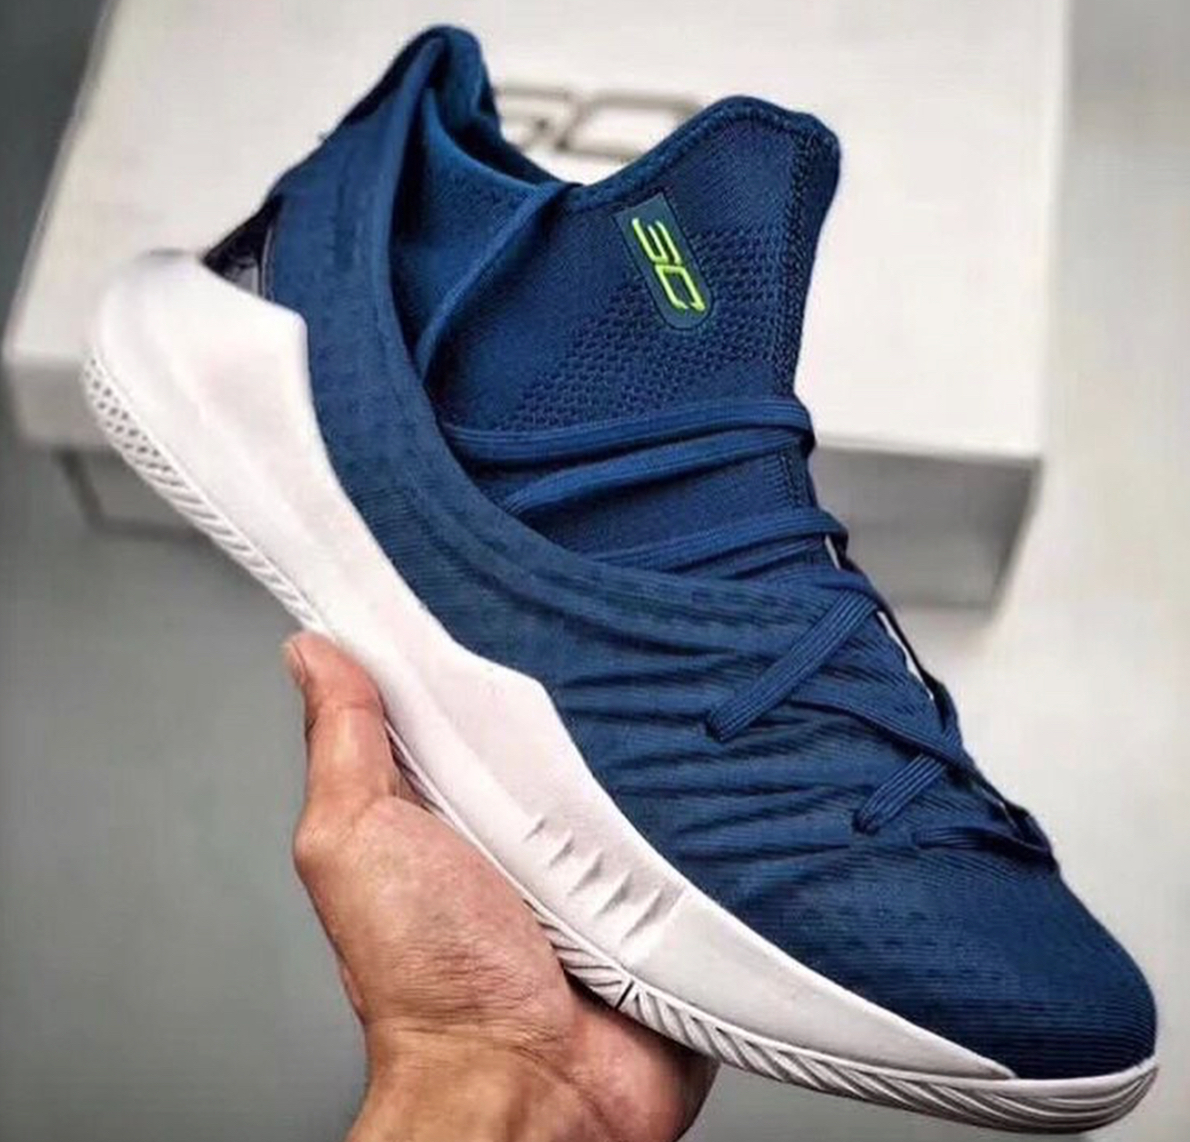 Under Armour Curry 5 Surfaces in Navy Colorway1